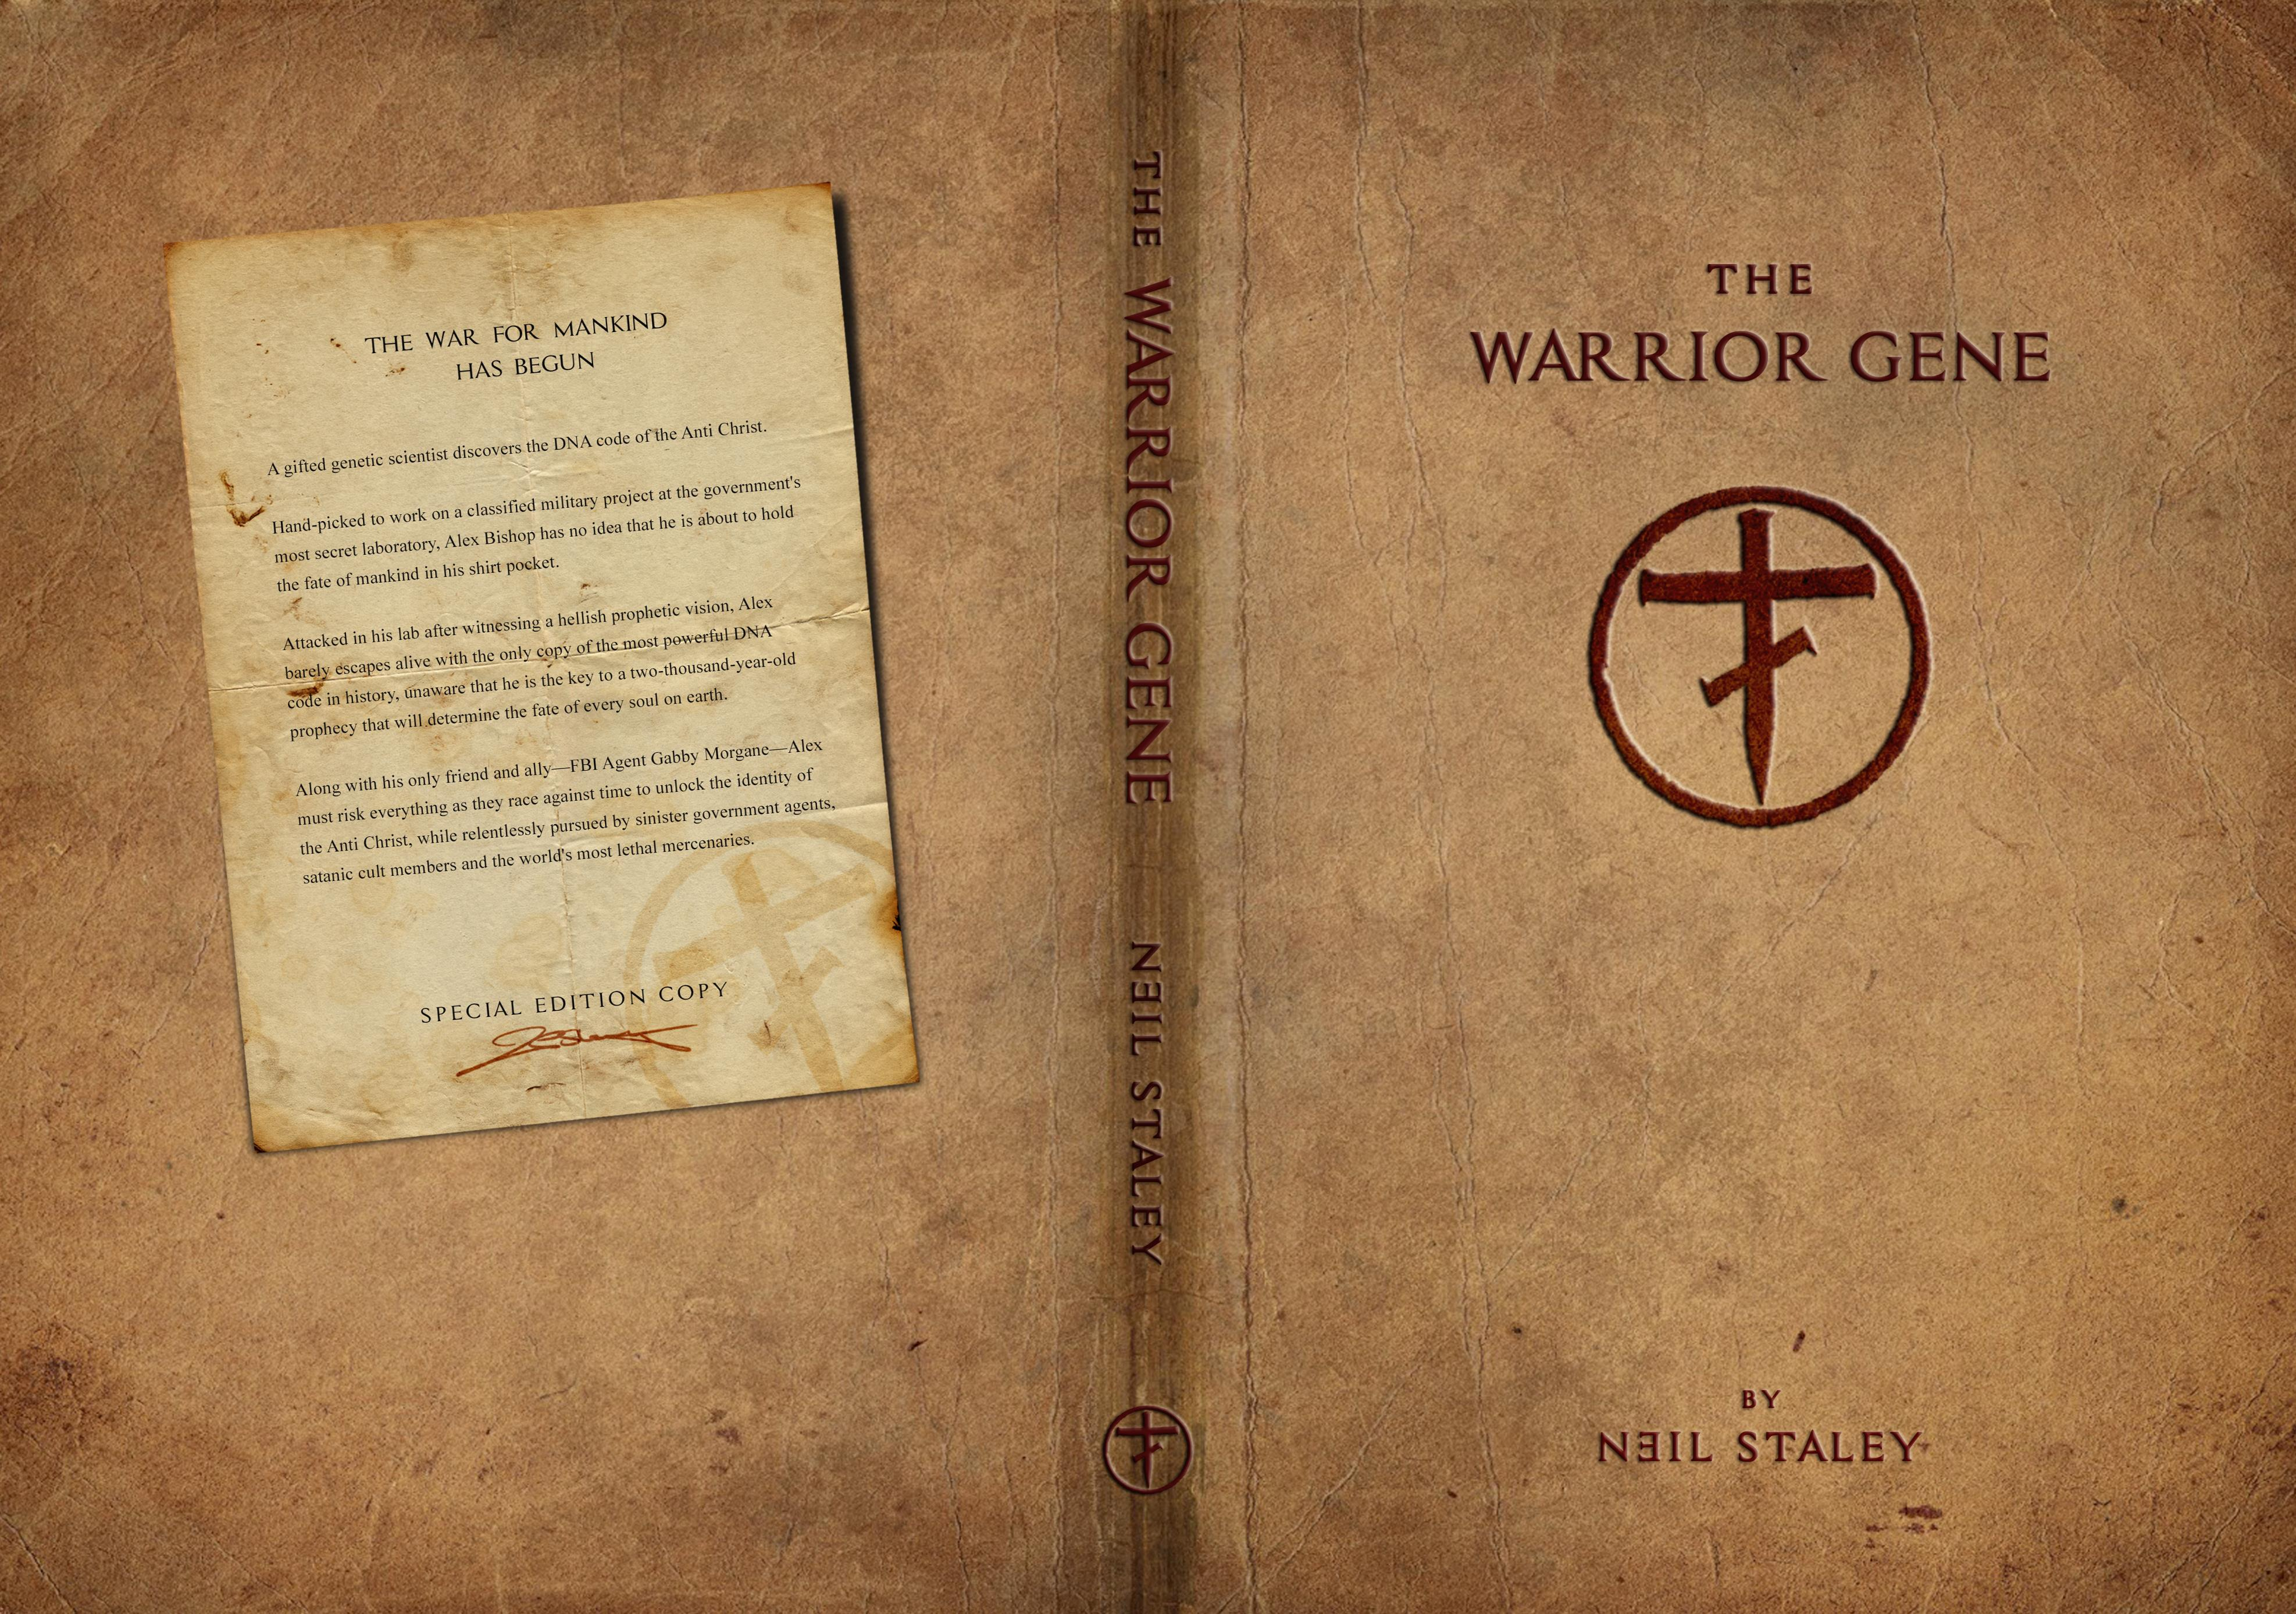 The Warrior Gene cover image